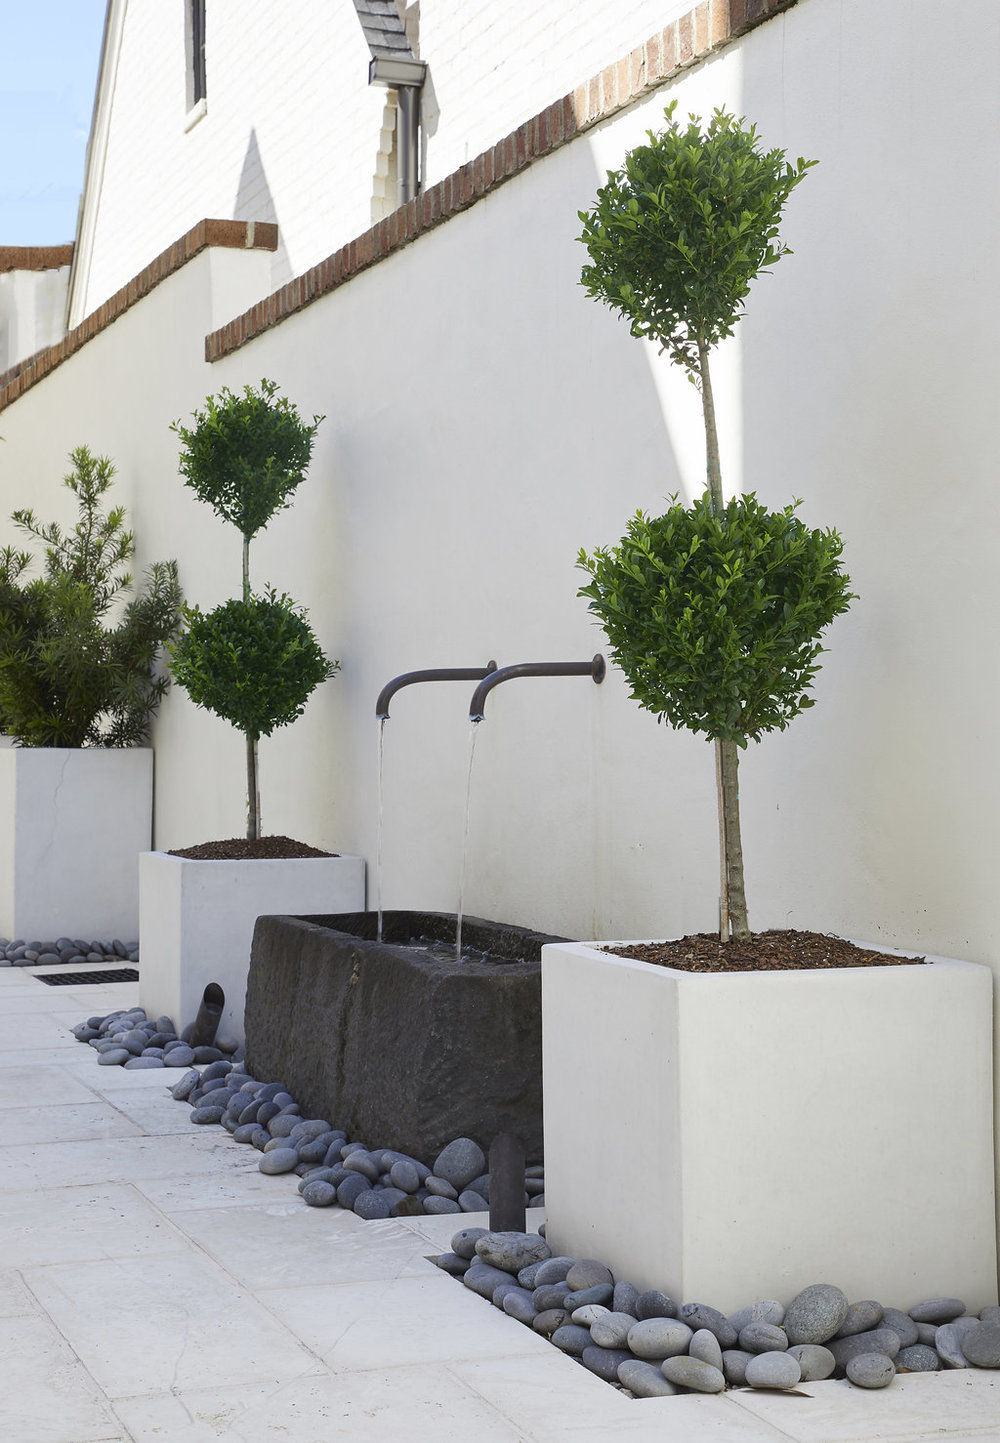 Custom built fountain into the wall - two large spigots going into a large custom built base.